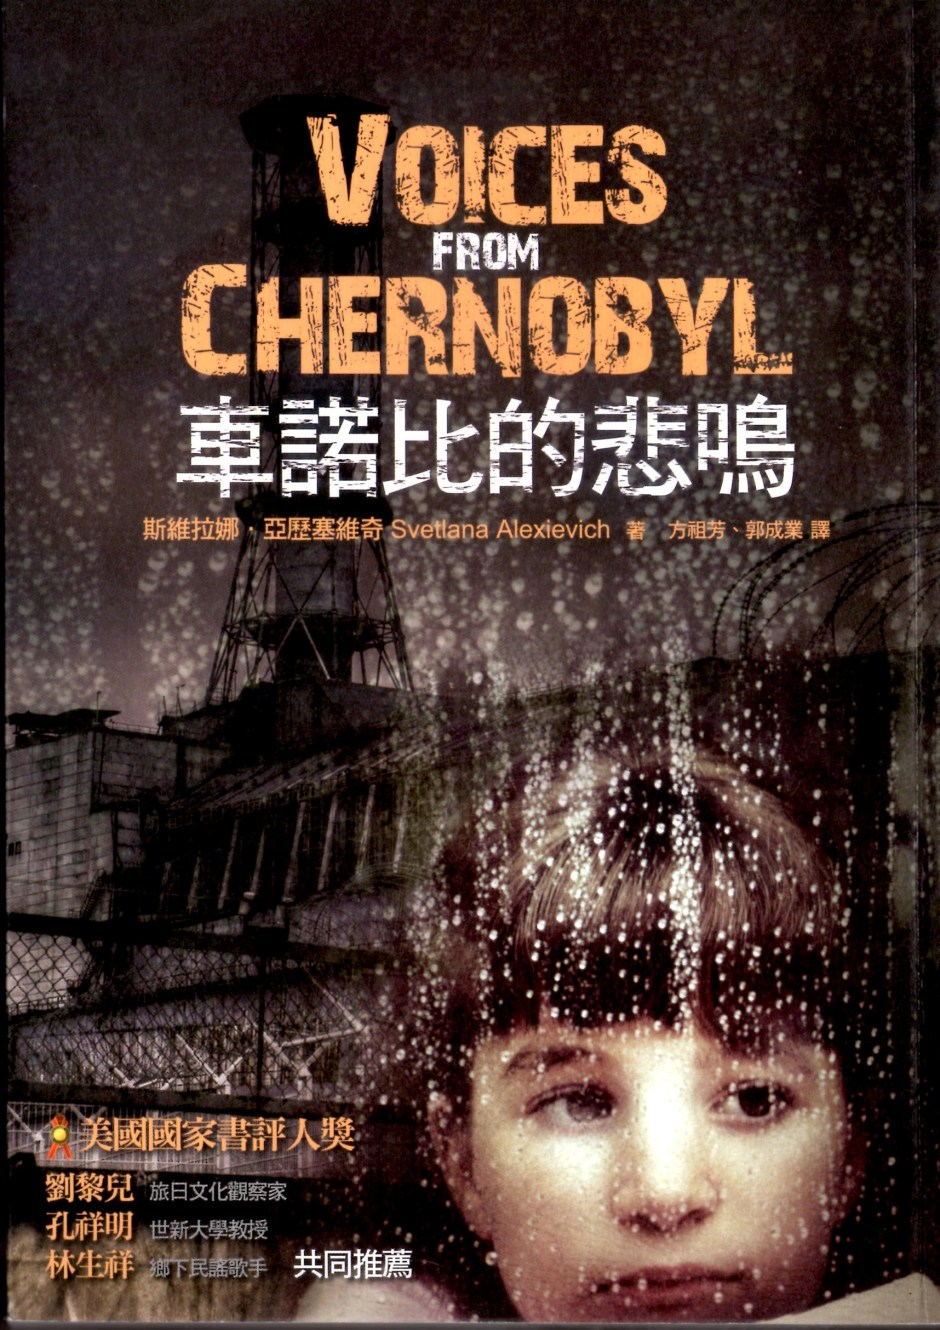 voice-from-chernobyl